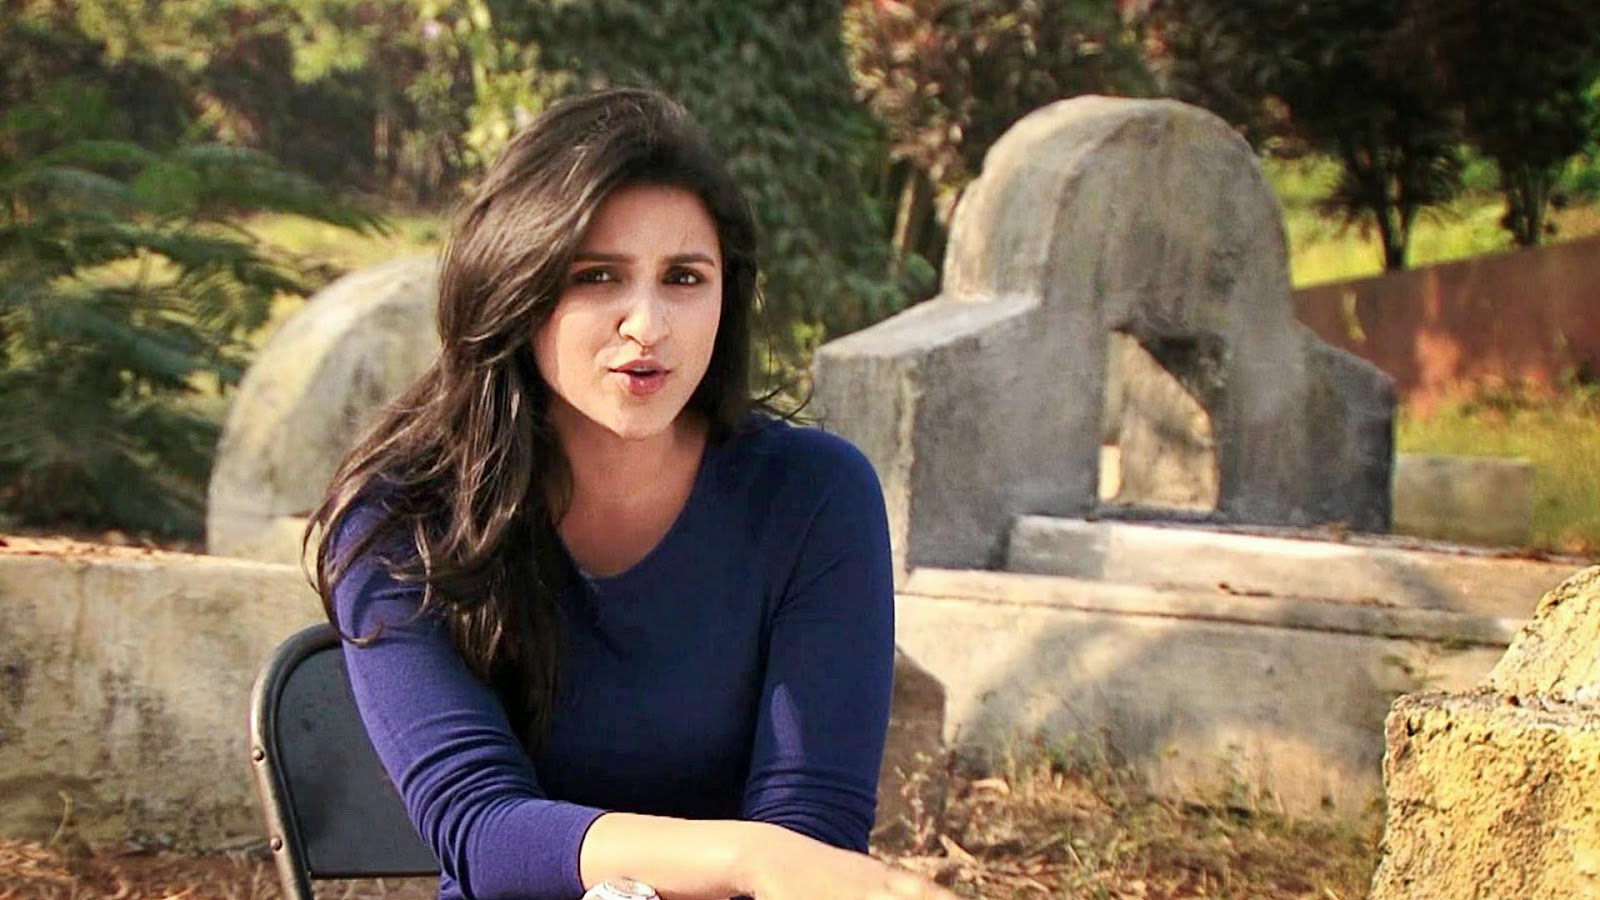 Desktop Parineeti Chopra Beauty Background Free Mobile Pictures Hd